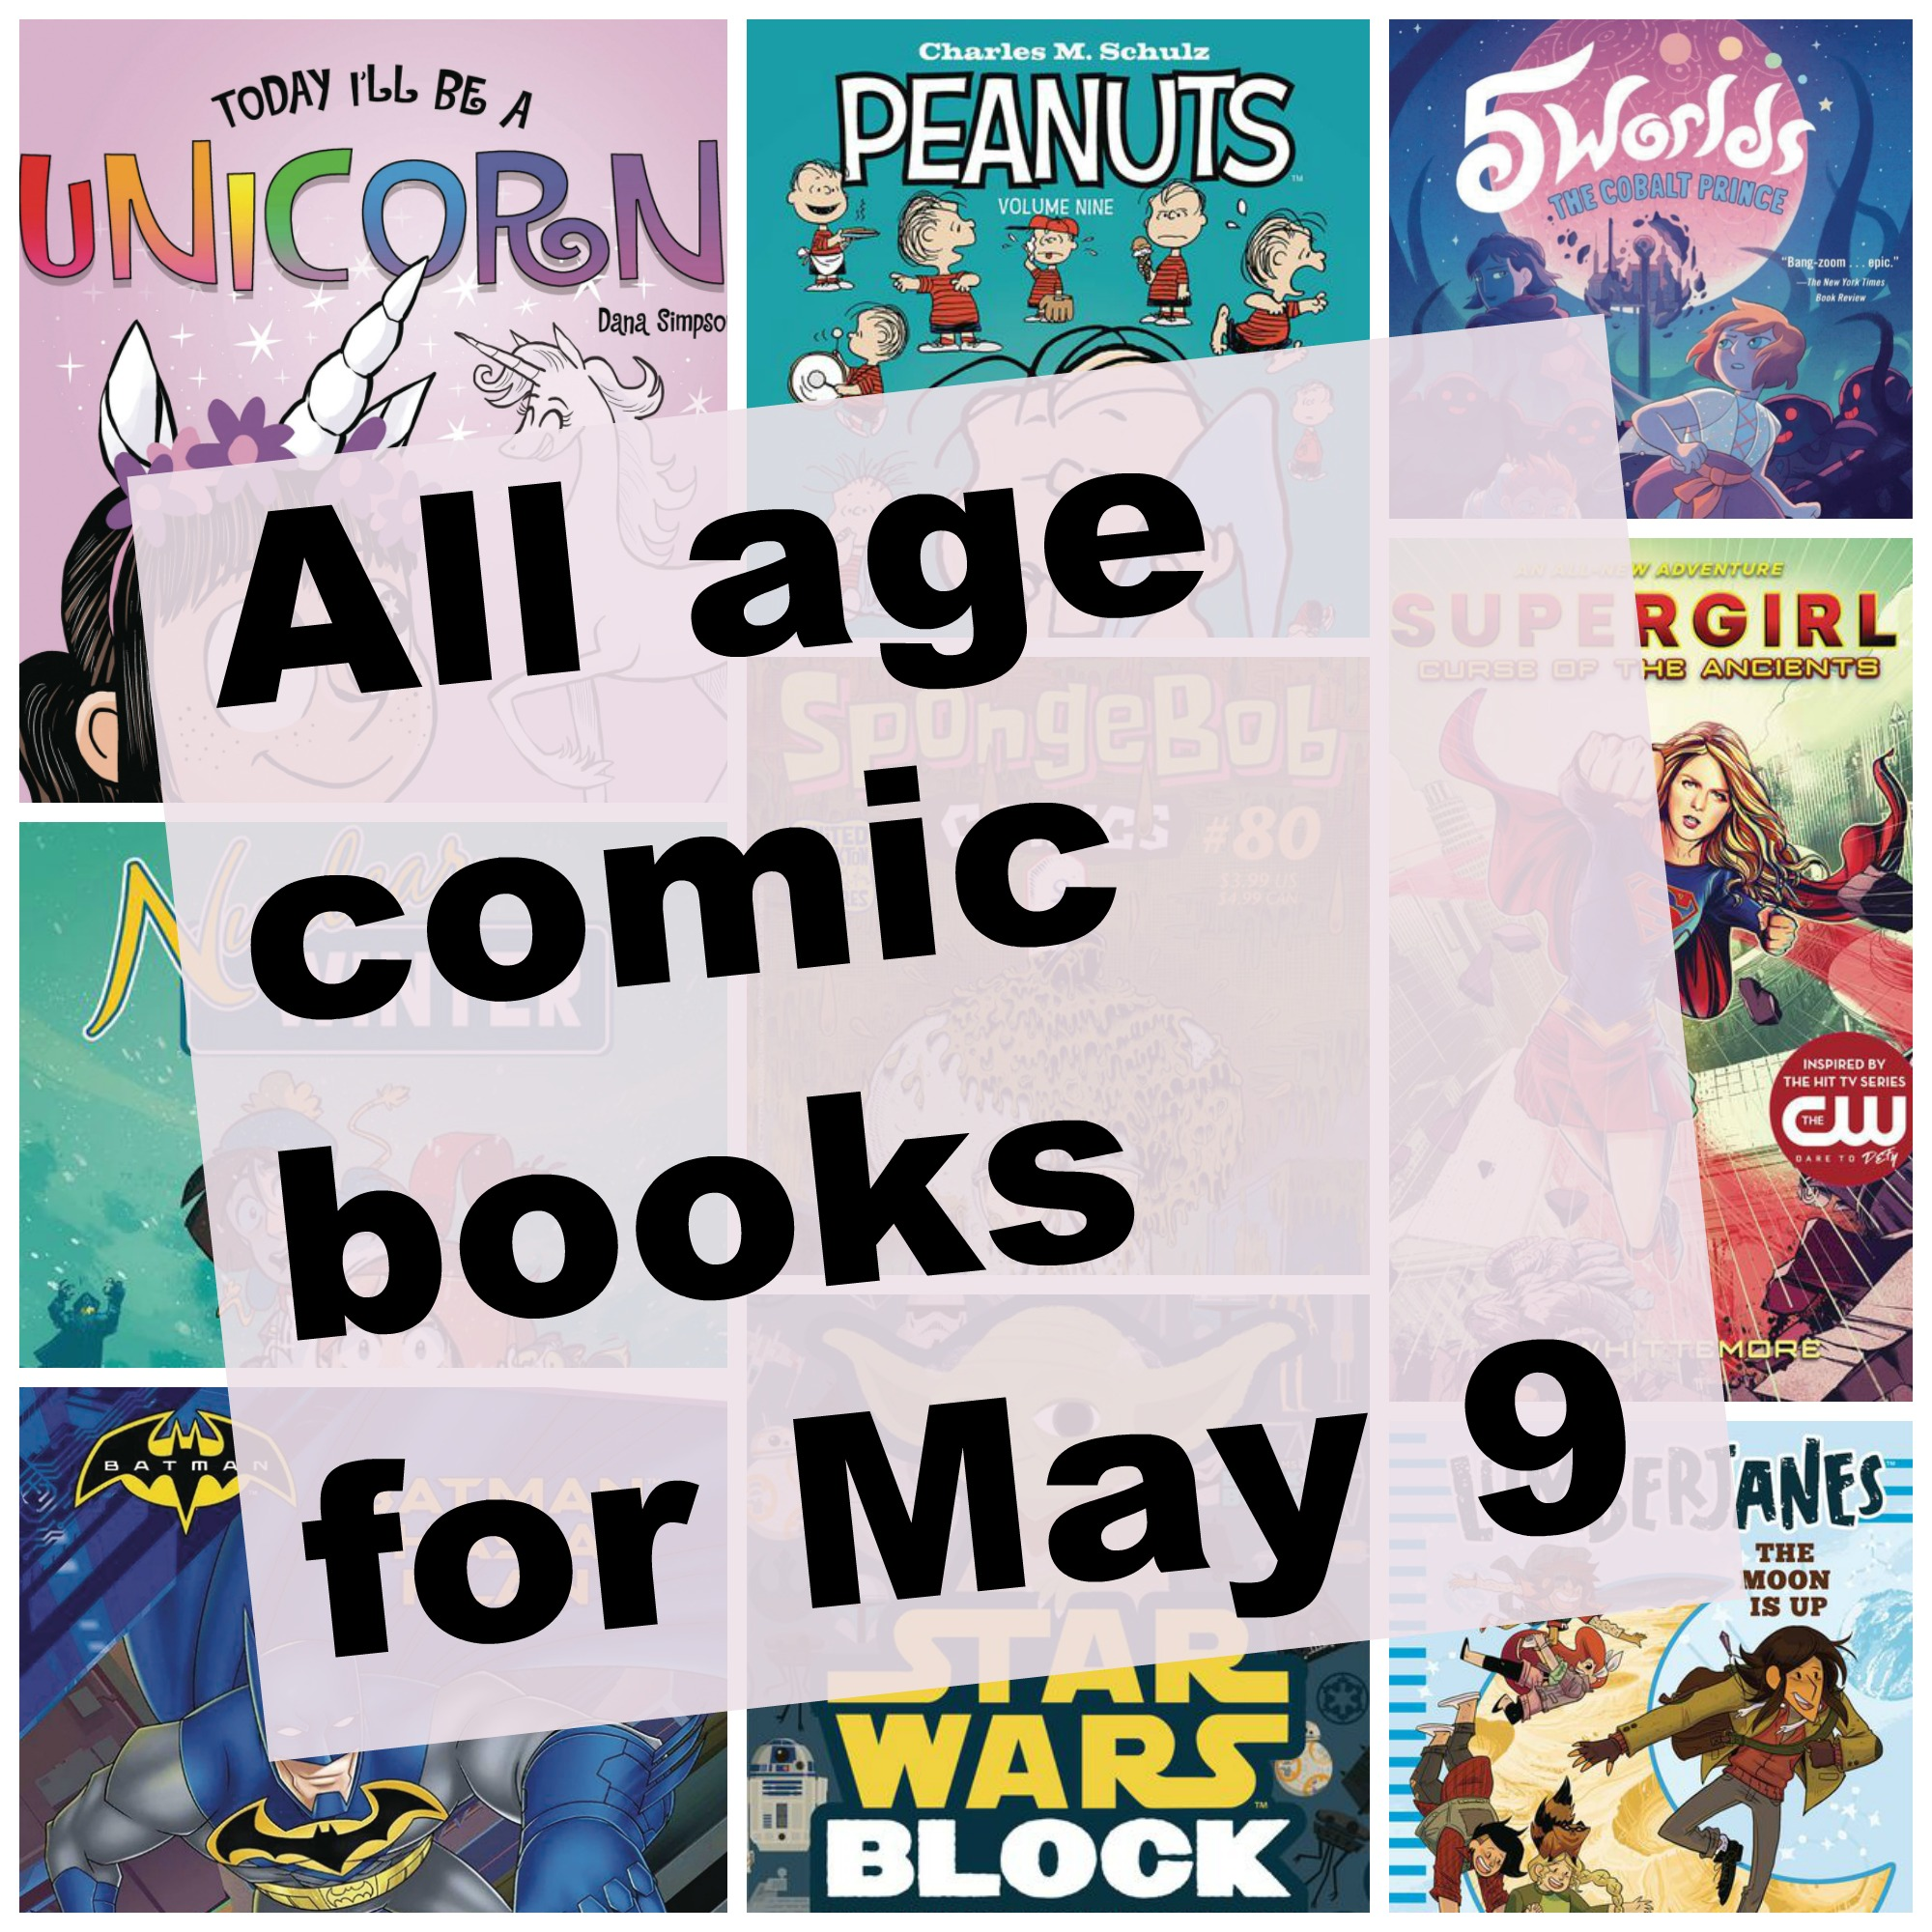 Free Comic Book Day May 2018: All Age Comic Books For May 9